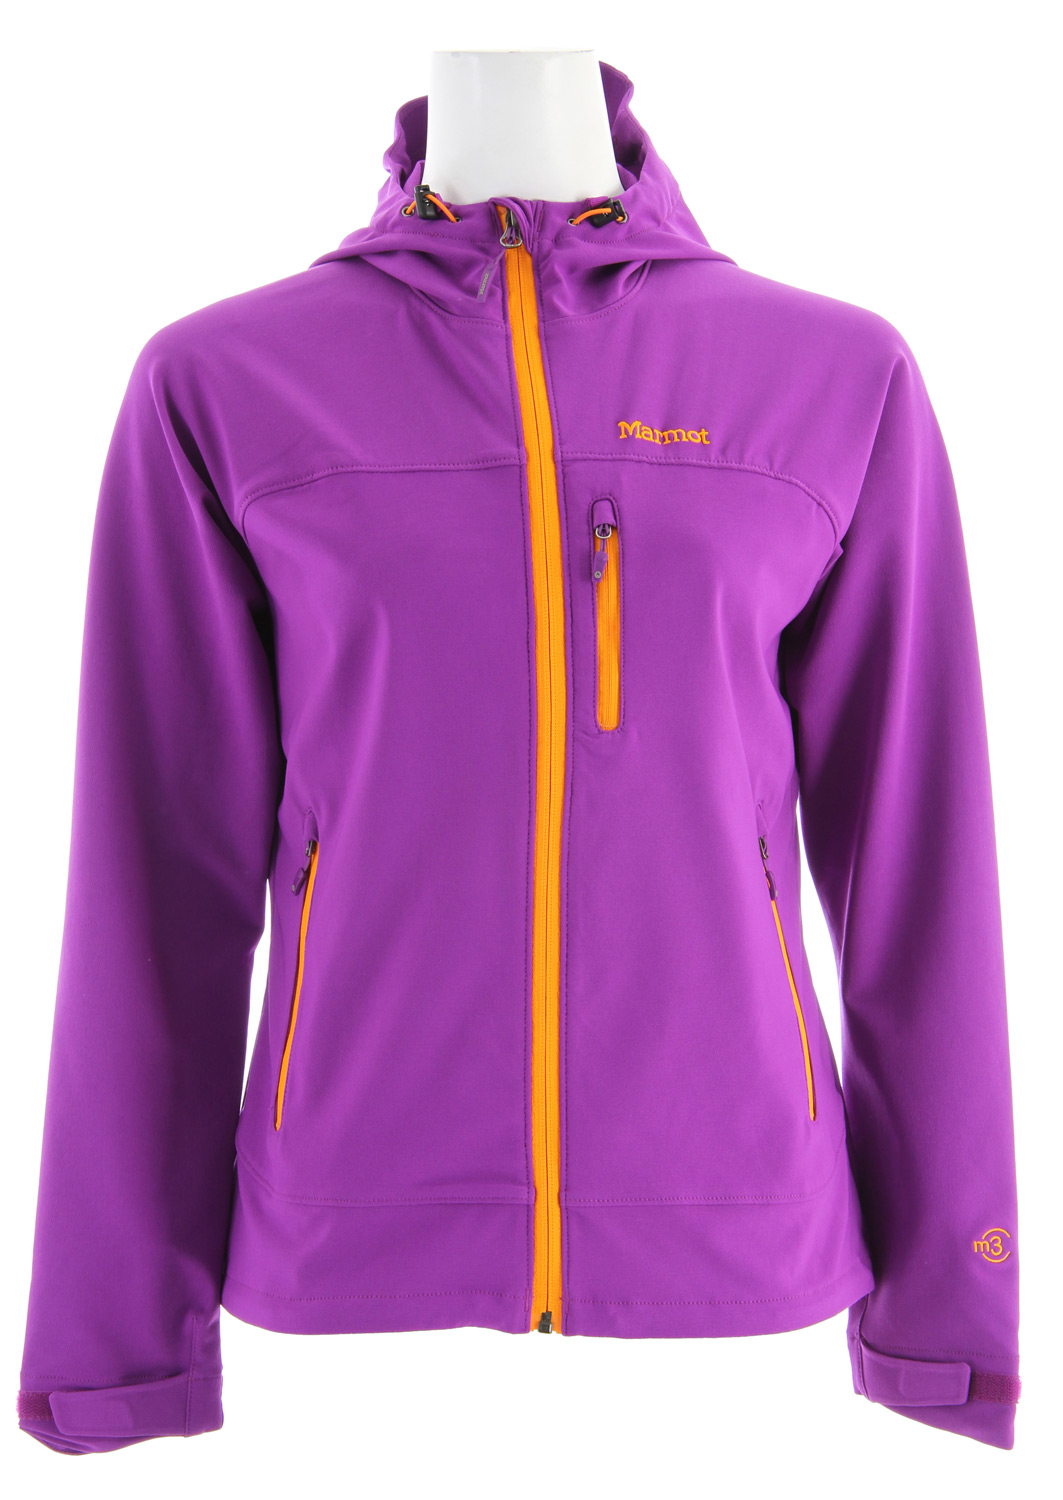 "A perfect layer for spring and fall, when comfort is key, and lightweight softshell performance is just what the doctor ordered. Sized and cut for the female form, with thoughtful features throughout. Handwarmer pockets employ concealed zippers, and reflective logos and cuffs shine brightly on dark nights.* Marmot M3 Softshell * Water Repellent and Breathable - Ideal for Aerobic Activity and Sheds Water * Handwarmer Pockets with Concealed Zippers * Sleeve Pocket with Concealed Zipper * Reflective bound Cuffs * Reflective Logos * Angel-Wing Movement - Allows Full Range of Motion in Arms so Jacket Doesn't Ride Up * 24 1/2"" Center Back Length for Size Medium * Center Back Length: 24.5in / 62.2cm * Weight: 10.2 oz / 289.2 g * Main Material: Softshell Double Weave 90% Polyester/10% Elastane Stretch 7.3 oz/yd - $91.95"